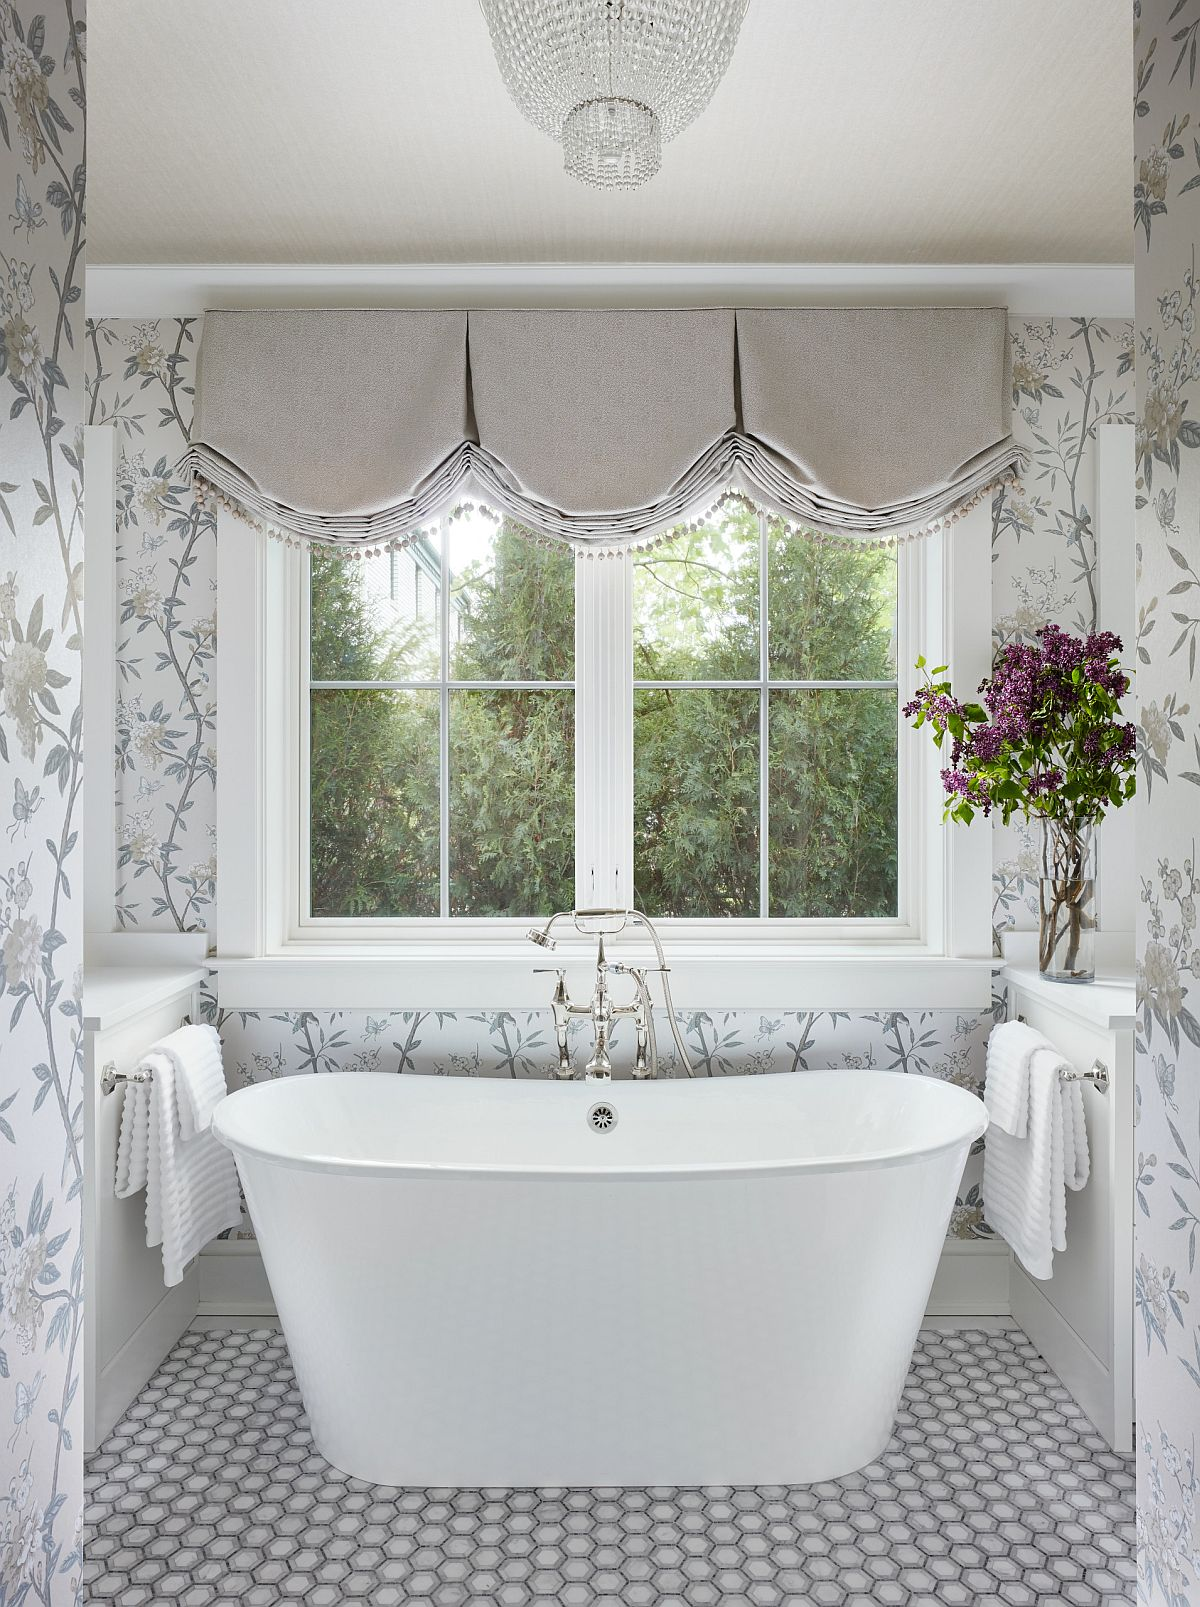 Captivating-spa-styled-bathroom-in-white-and-gray-with-walls-draped-in-flowery-pattern-95258